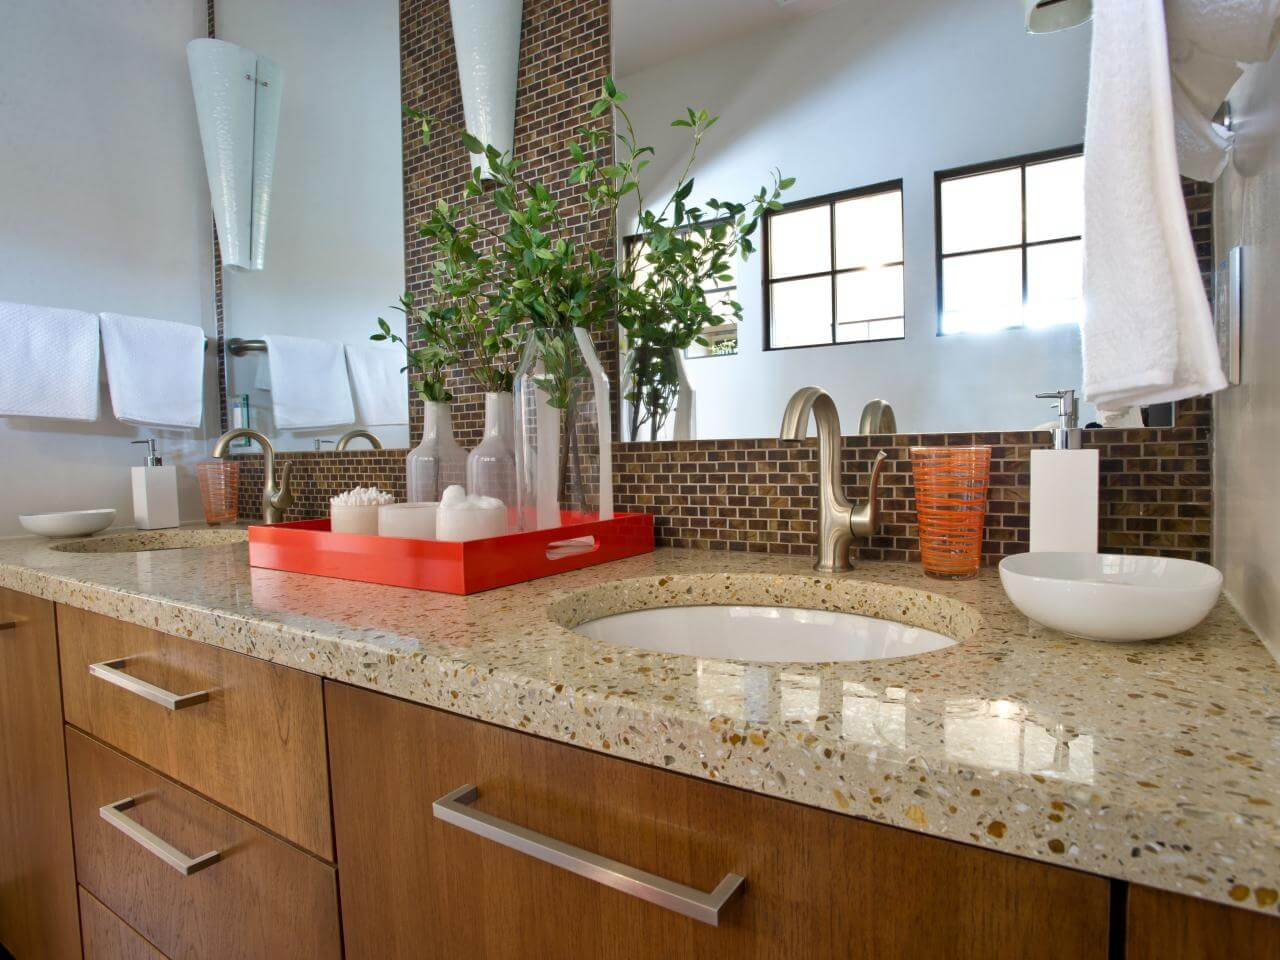 Tips for Serving on Granite Countertops this Holiday Season